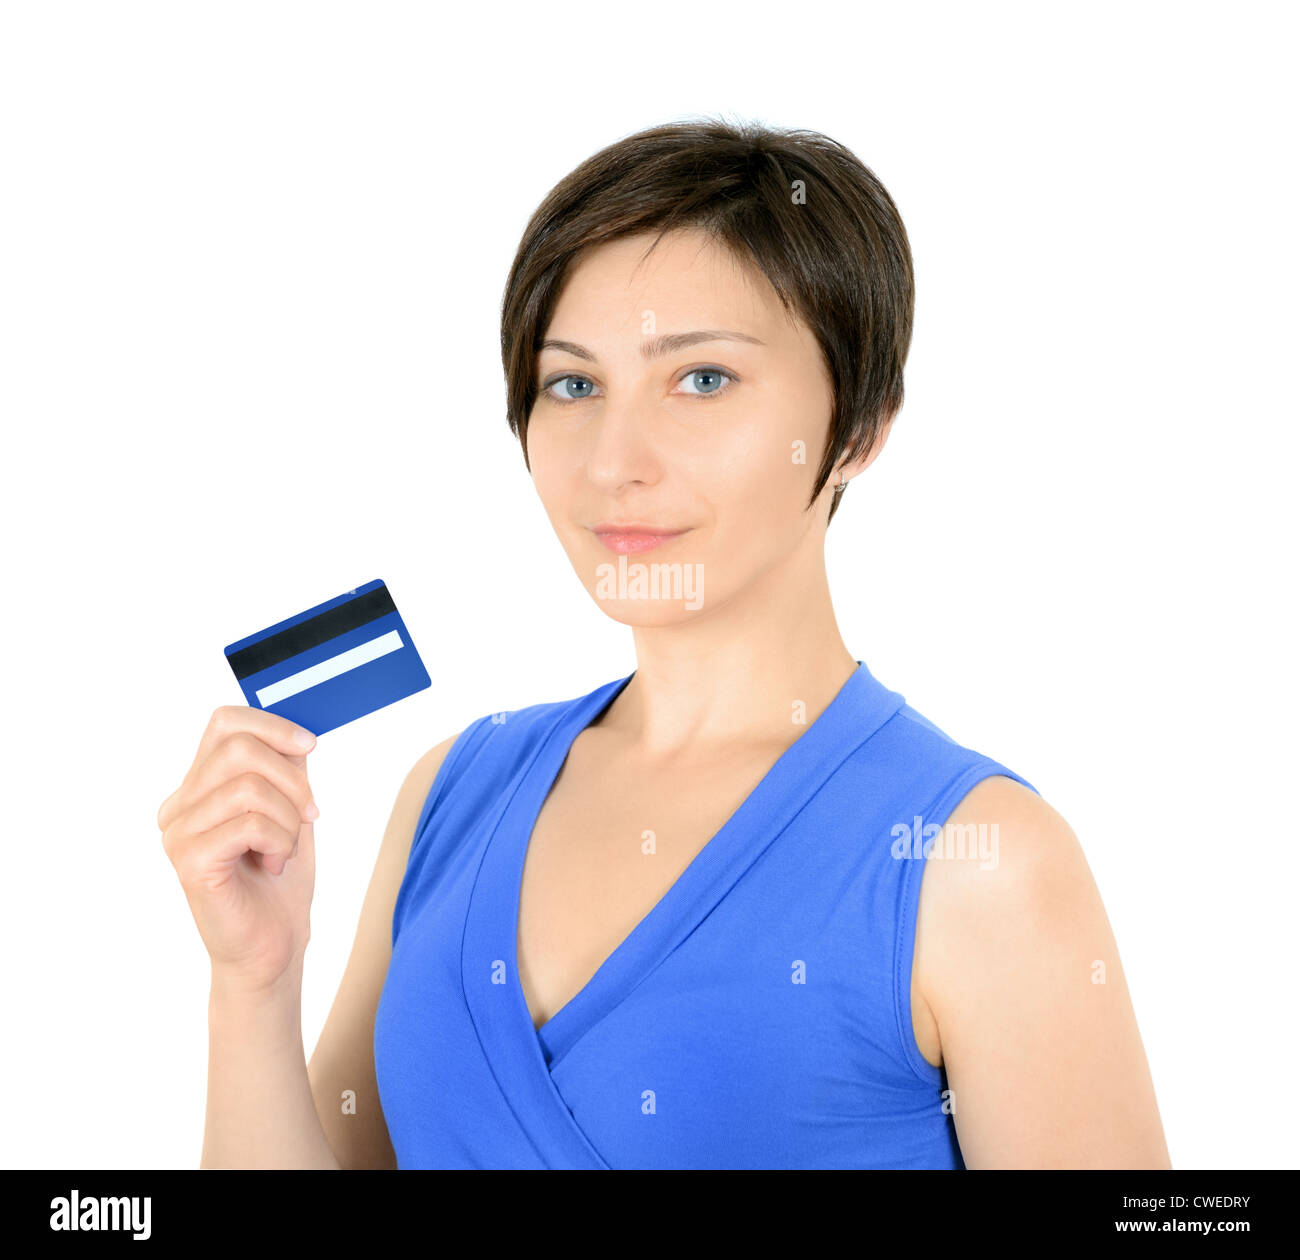 Pretty young woman showing credit card. Isolated on white. - Stock Image